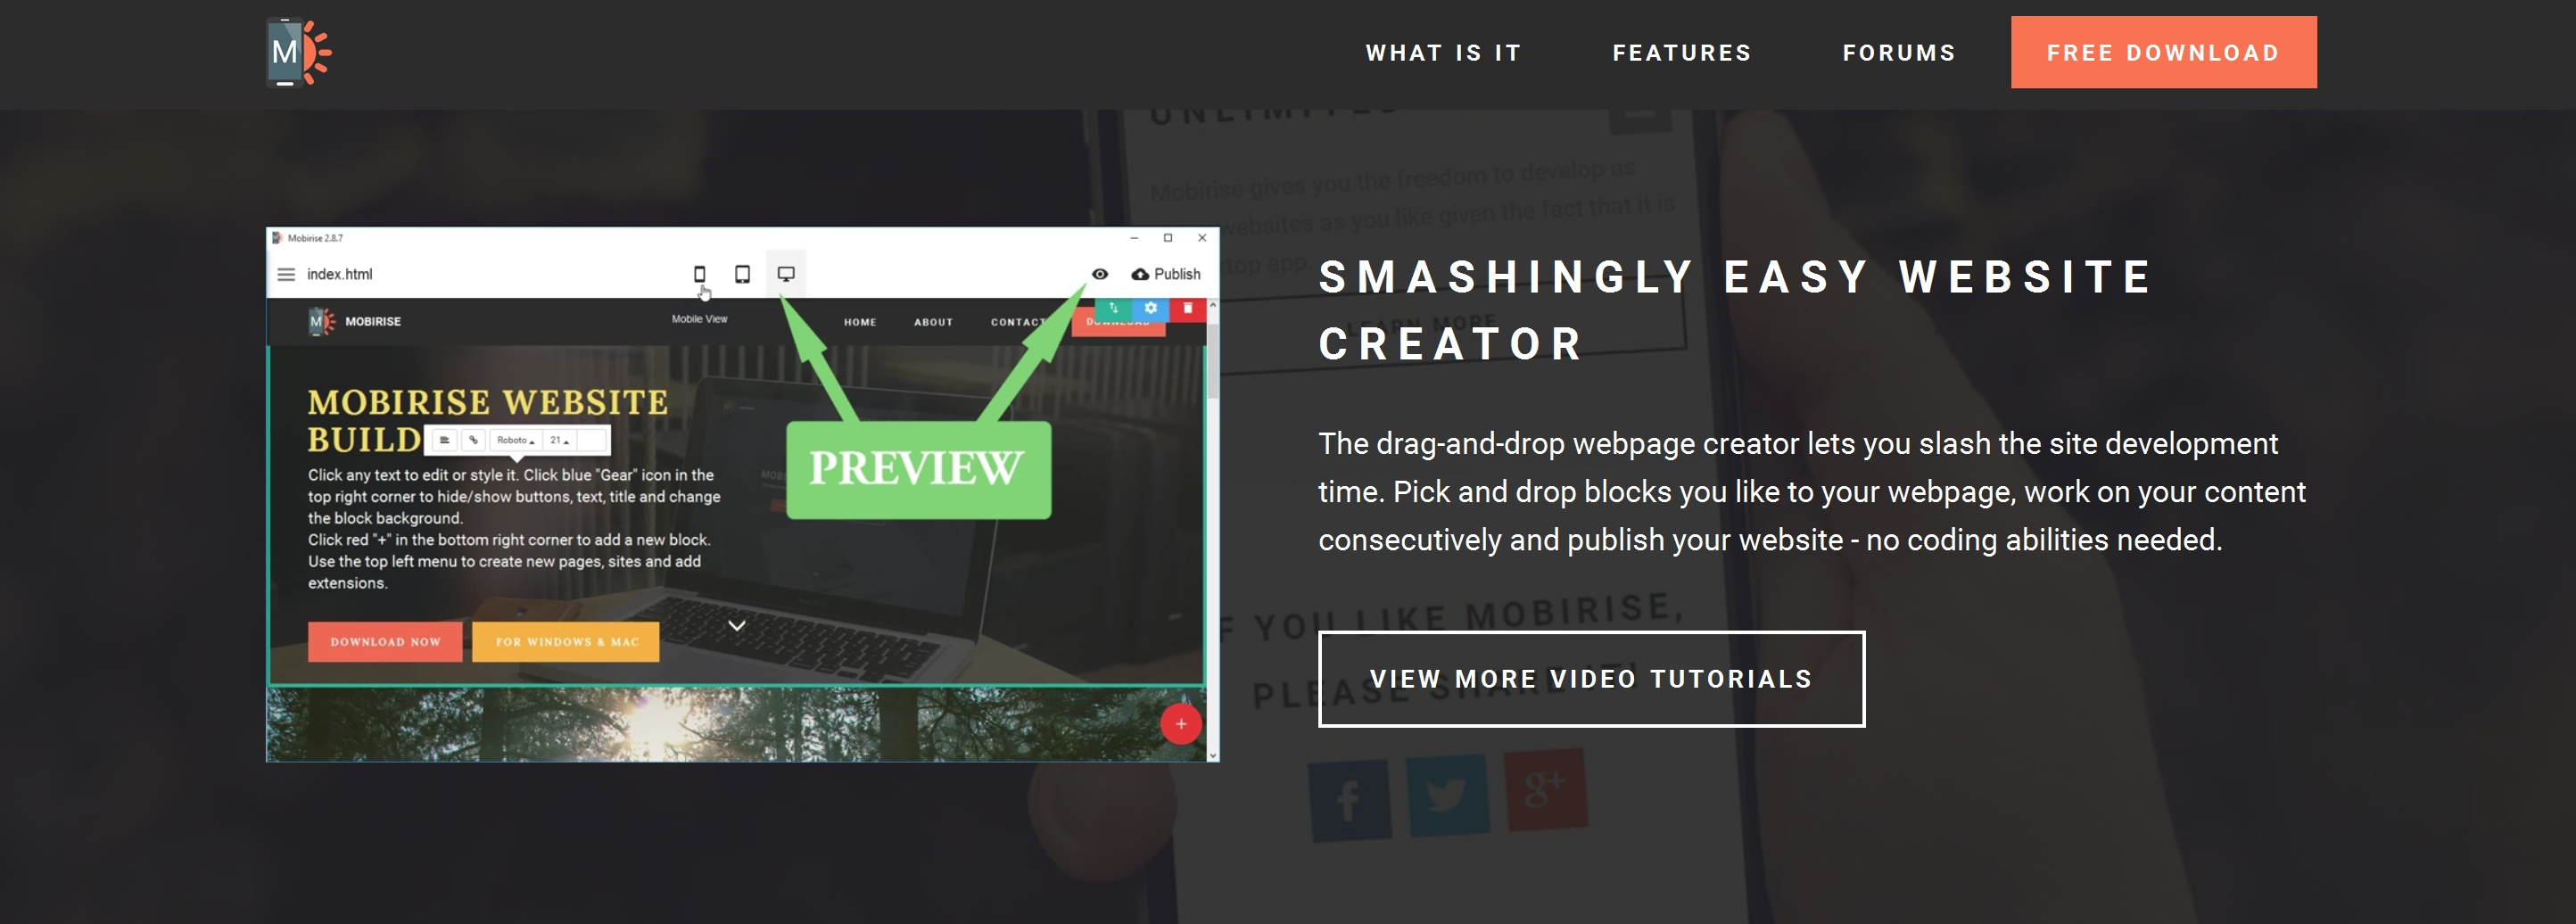 Html5 Web Page Creator Review